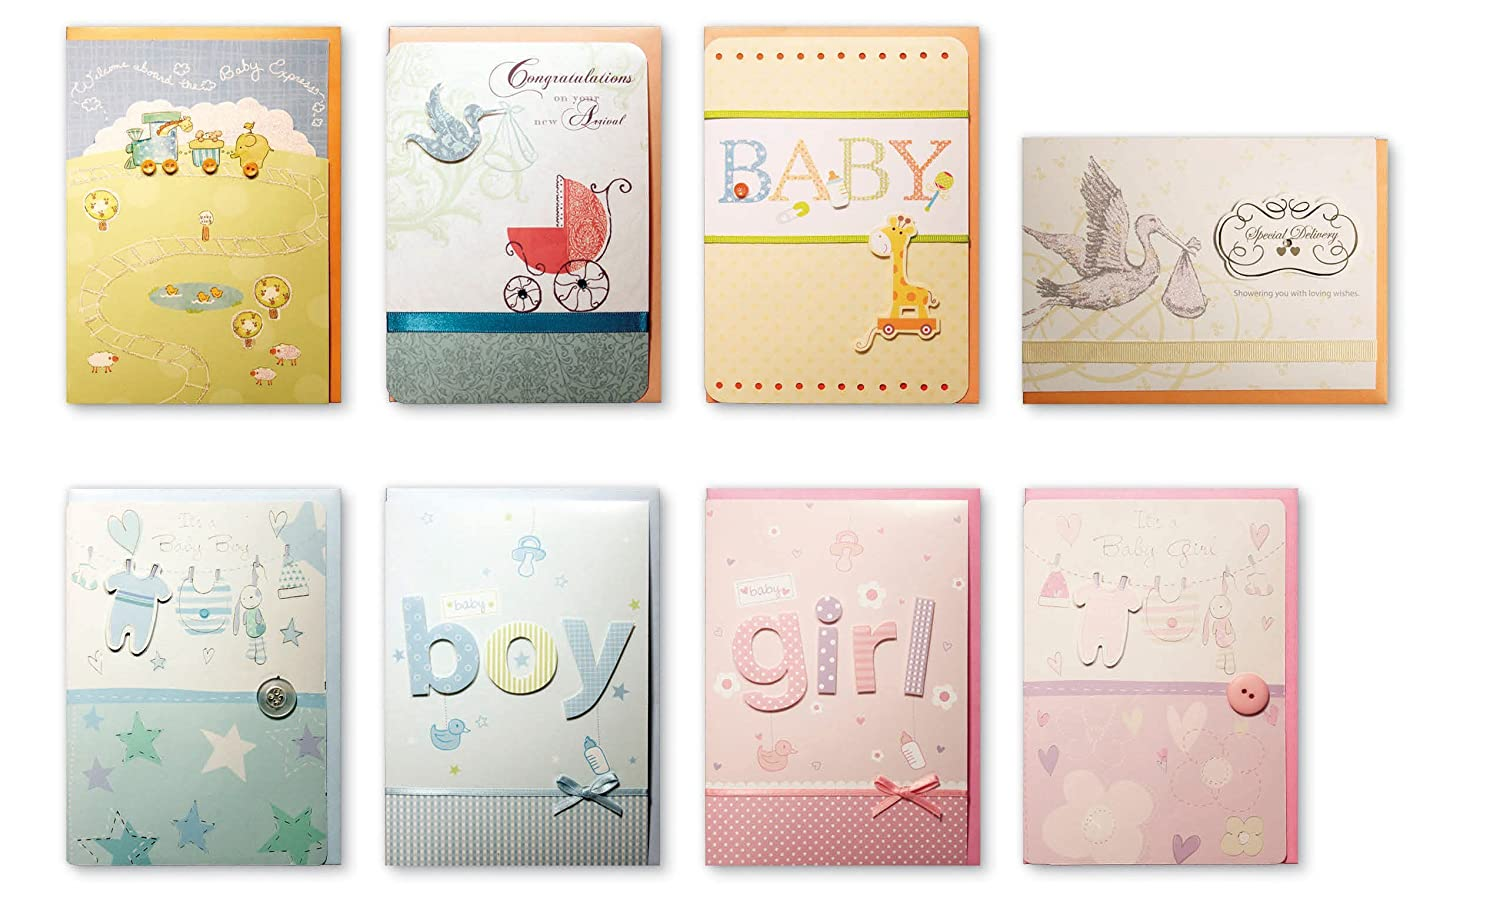 amazoncom assorted congratulations wishes for baby cards box set 8 pack handmade embellished assortment greeting cards for boy or girl birth shower